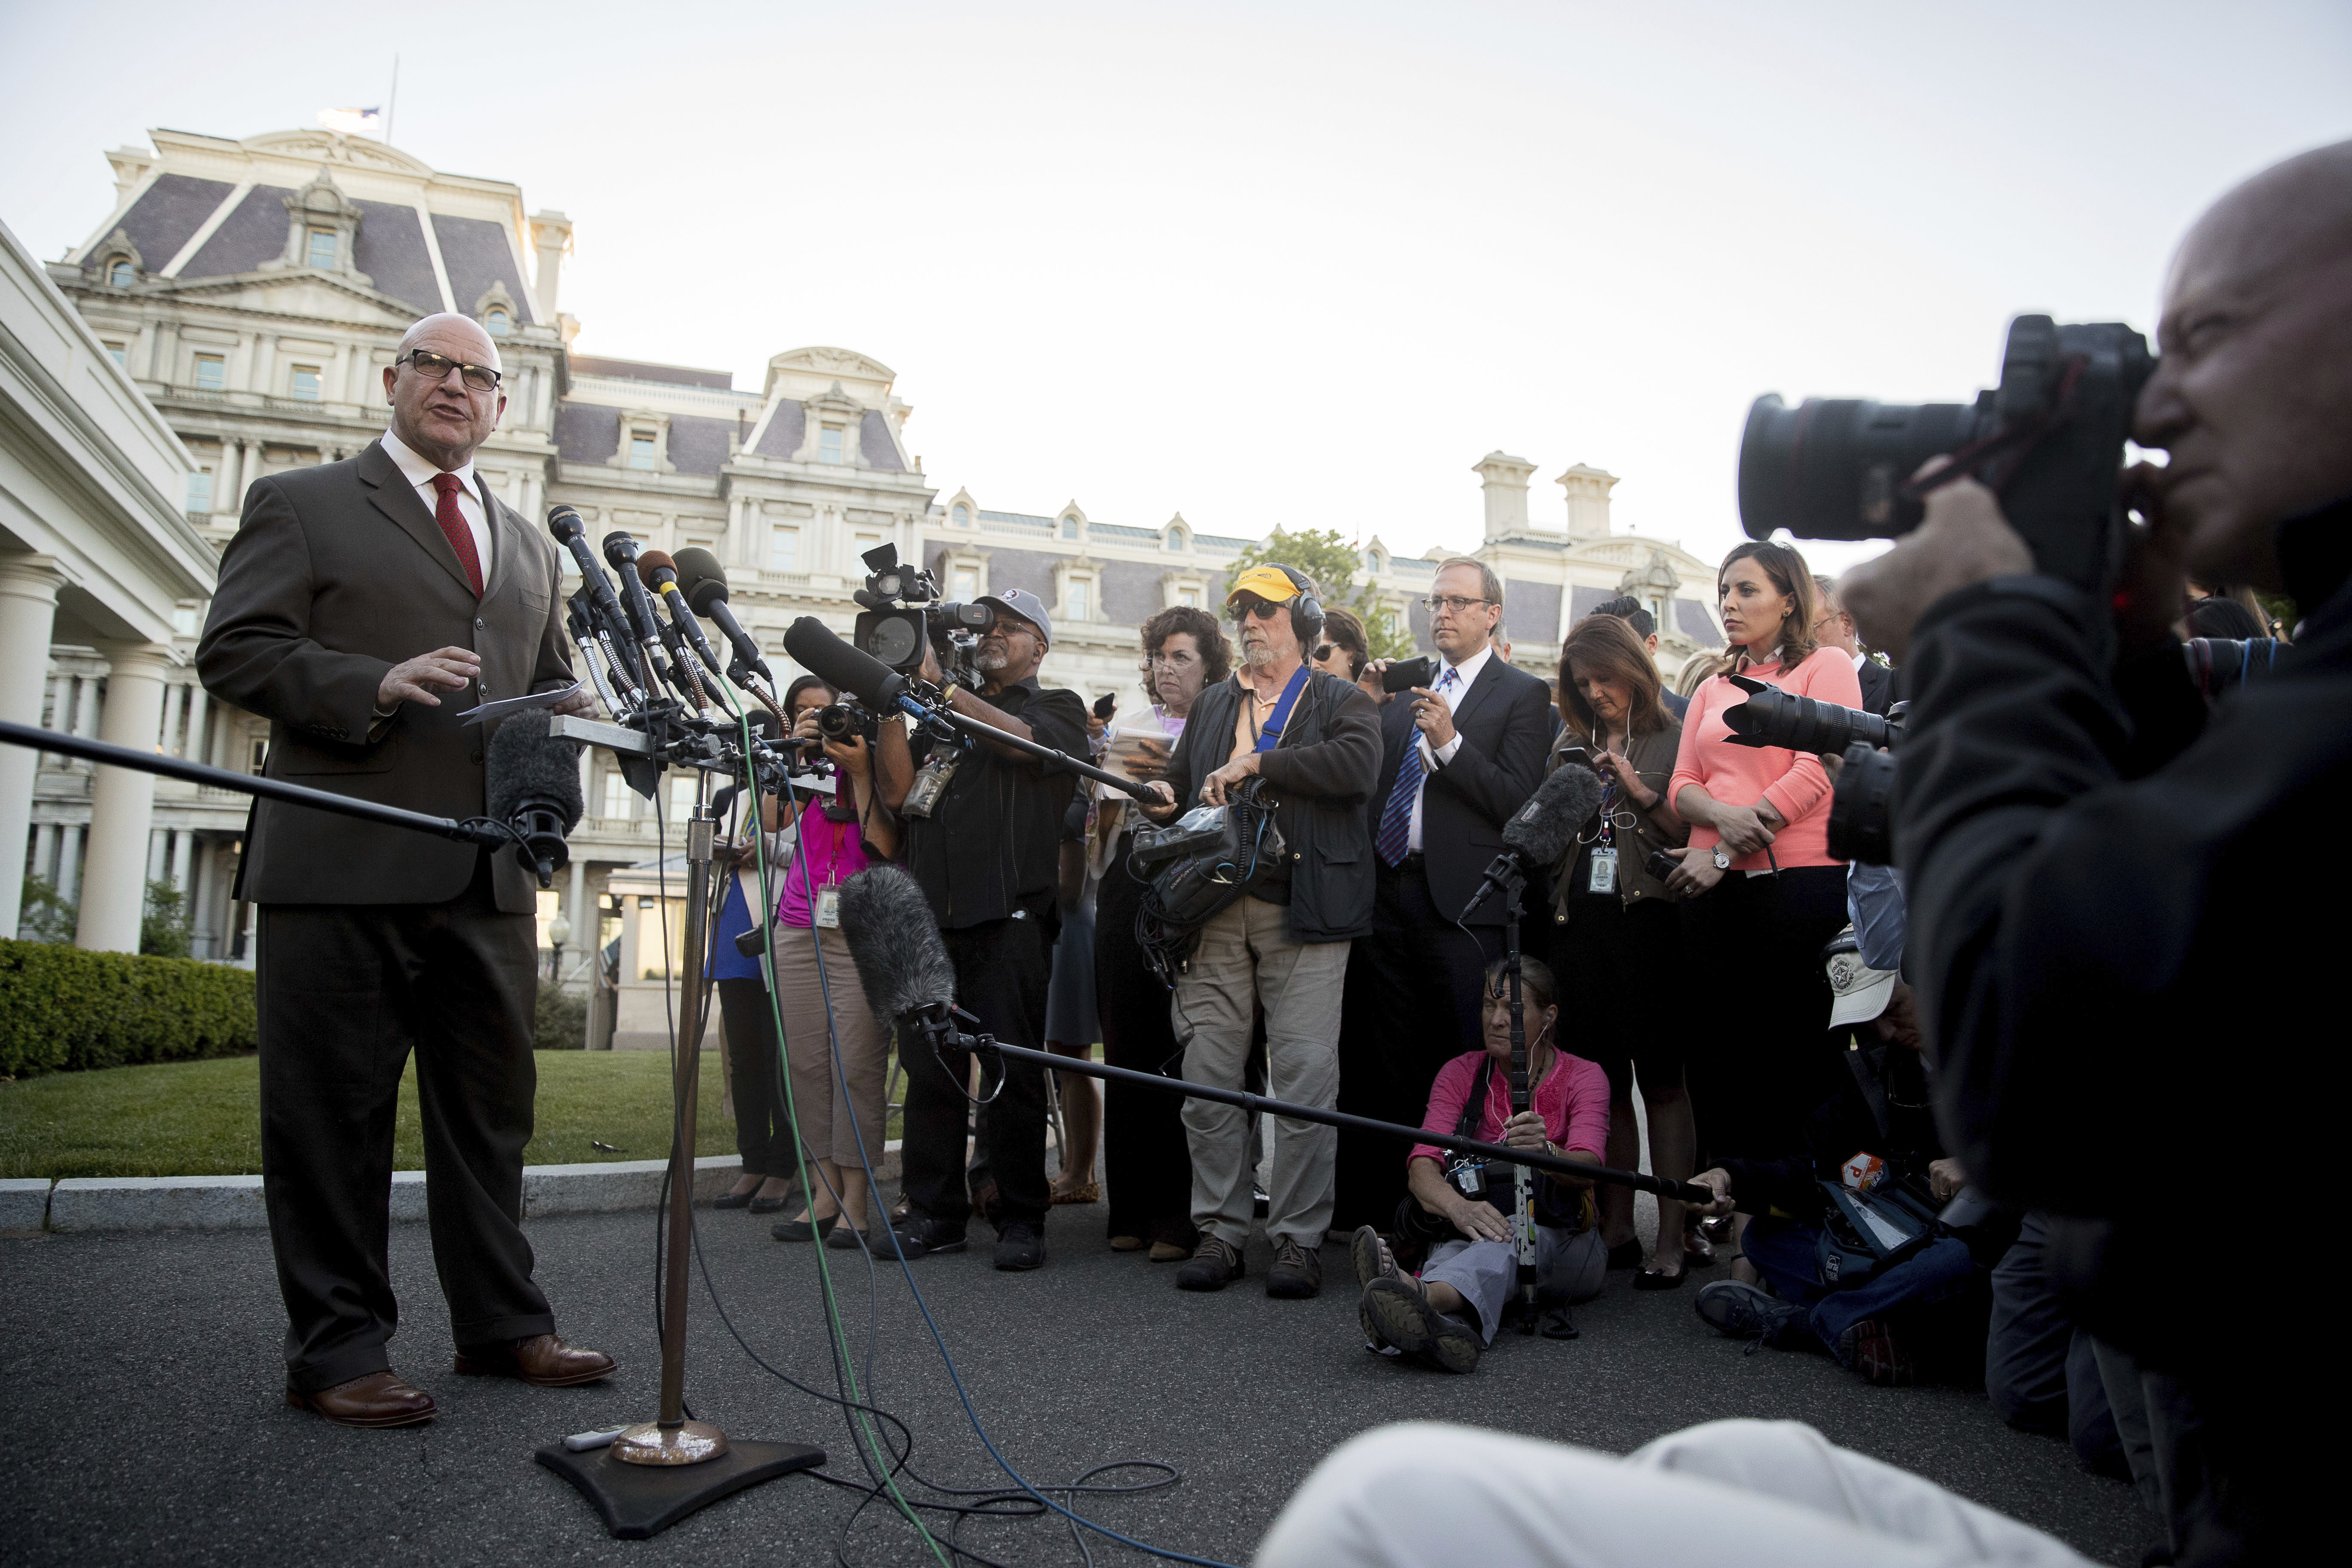 National Security Adviser H.R. McMaster speaks to members of the media outside the West Wing of the White House, Monday, May 15, 2017, in Washington. (AP Photo/Andrew Harnik)